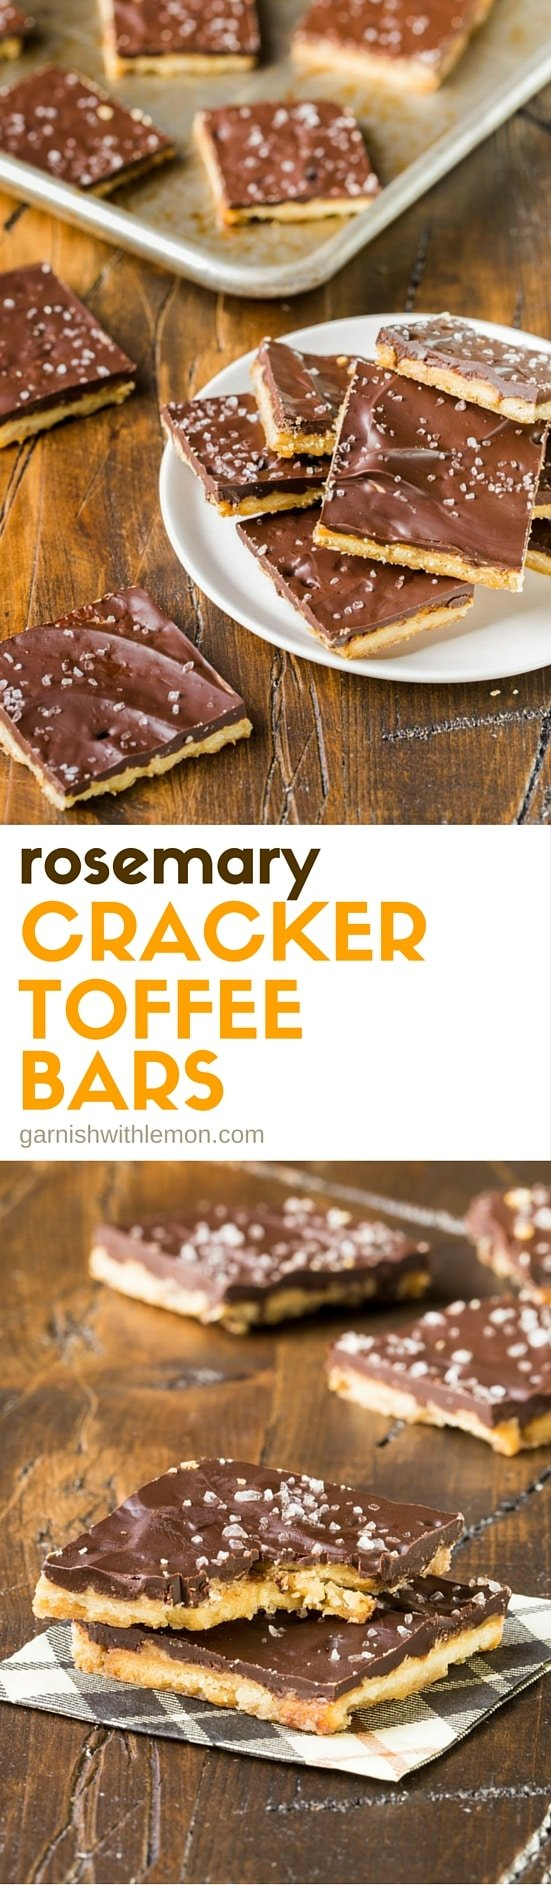 Need a homemade food gift for the holidays? Check our our insanely easy Rosemary Cracker Toffee Bars recipe!